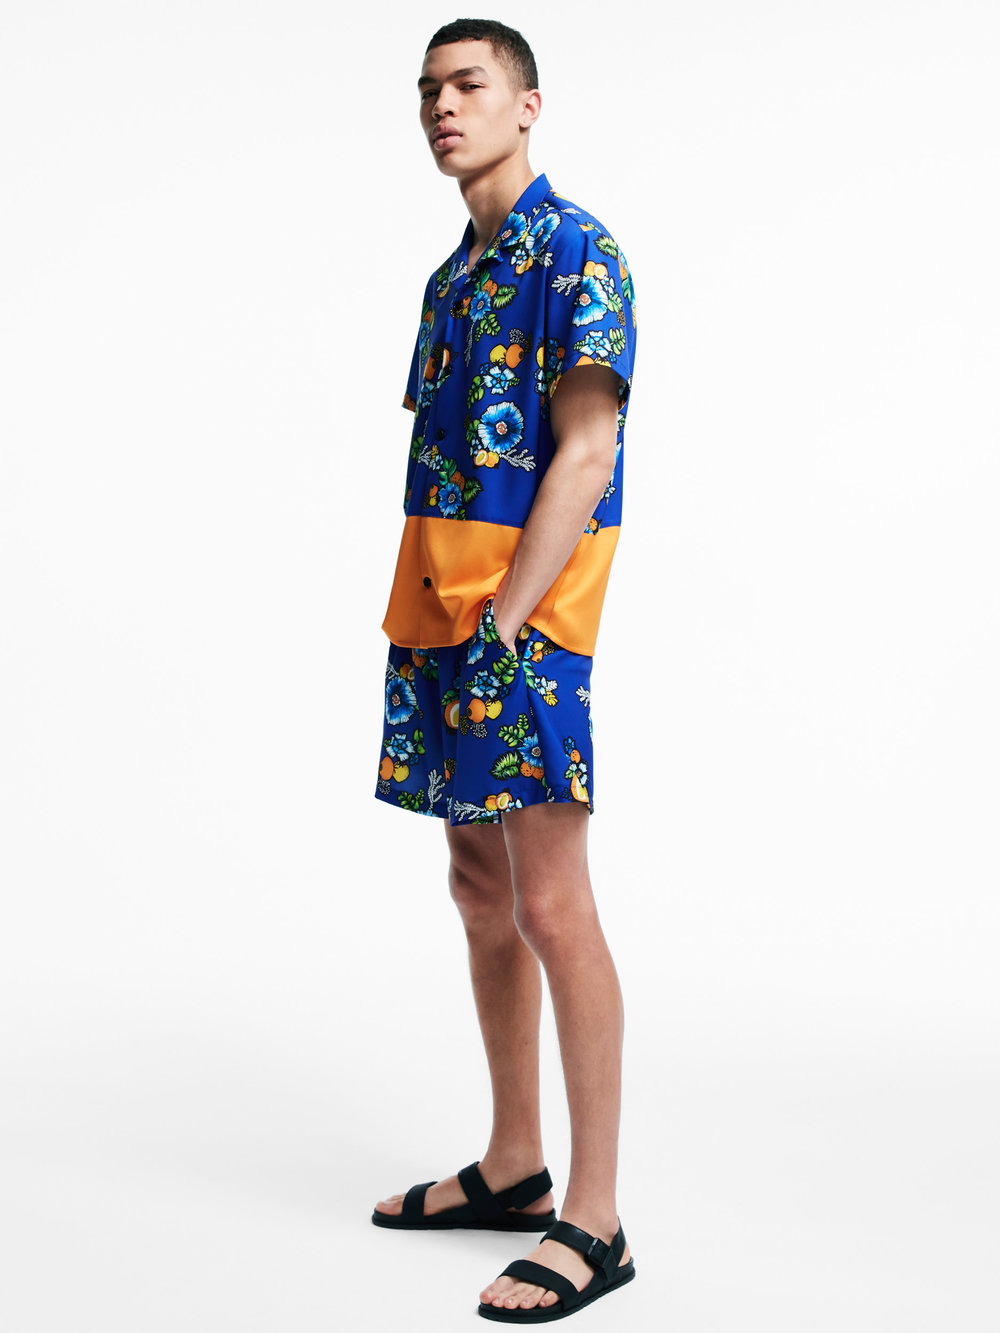 asos-lookbook-mw-intl2.jpg